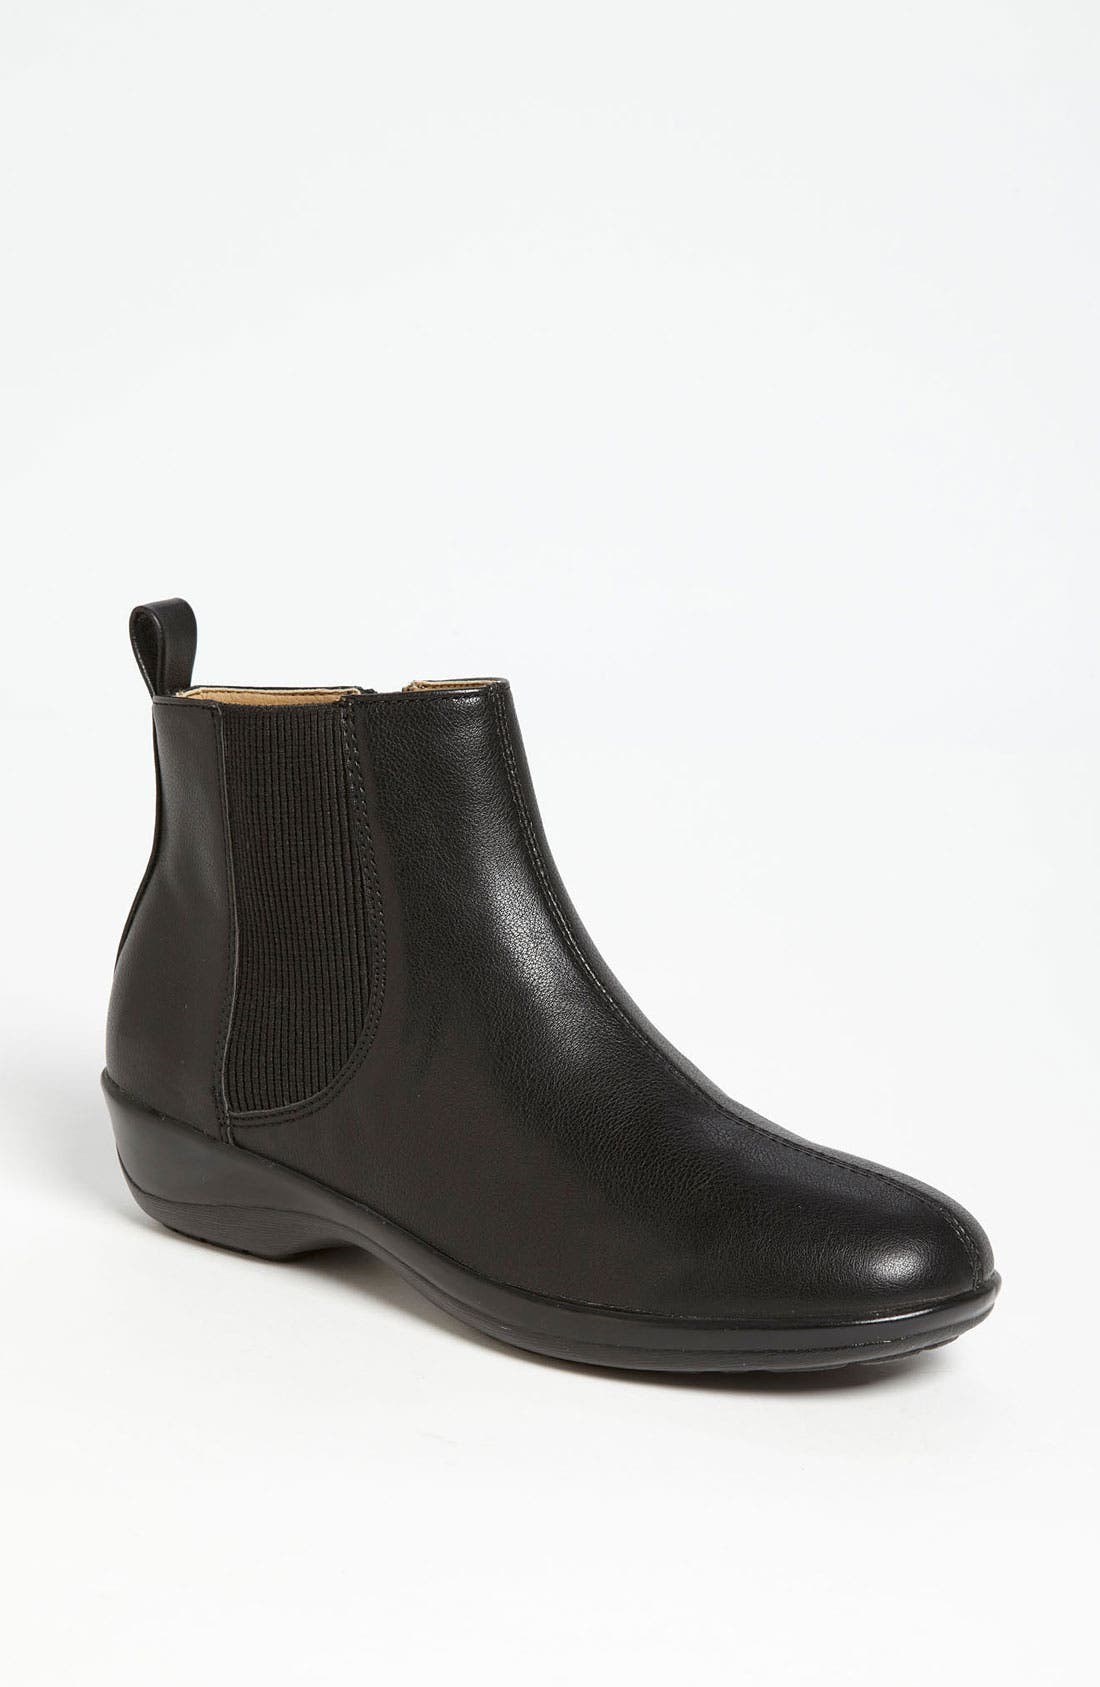 Alternate Image 1 Selected - Softspots 'Aggie' Bootie